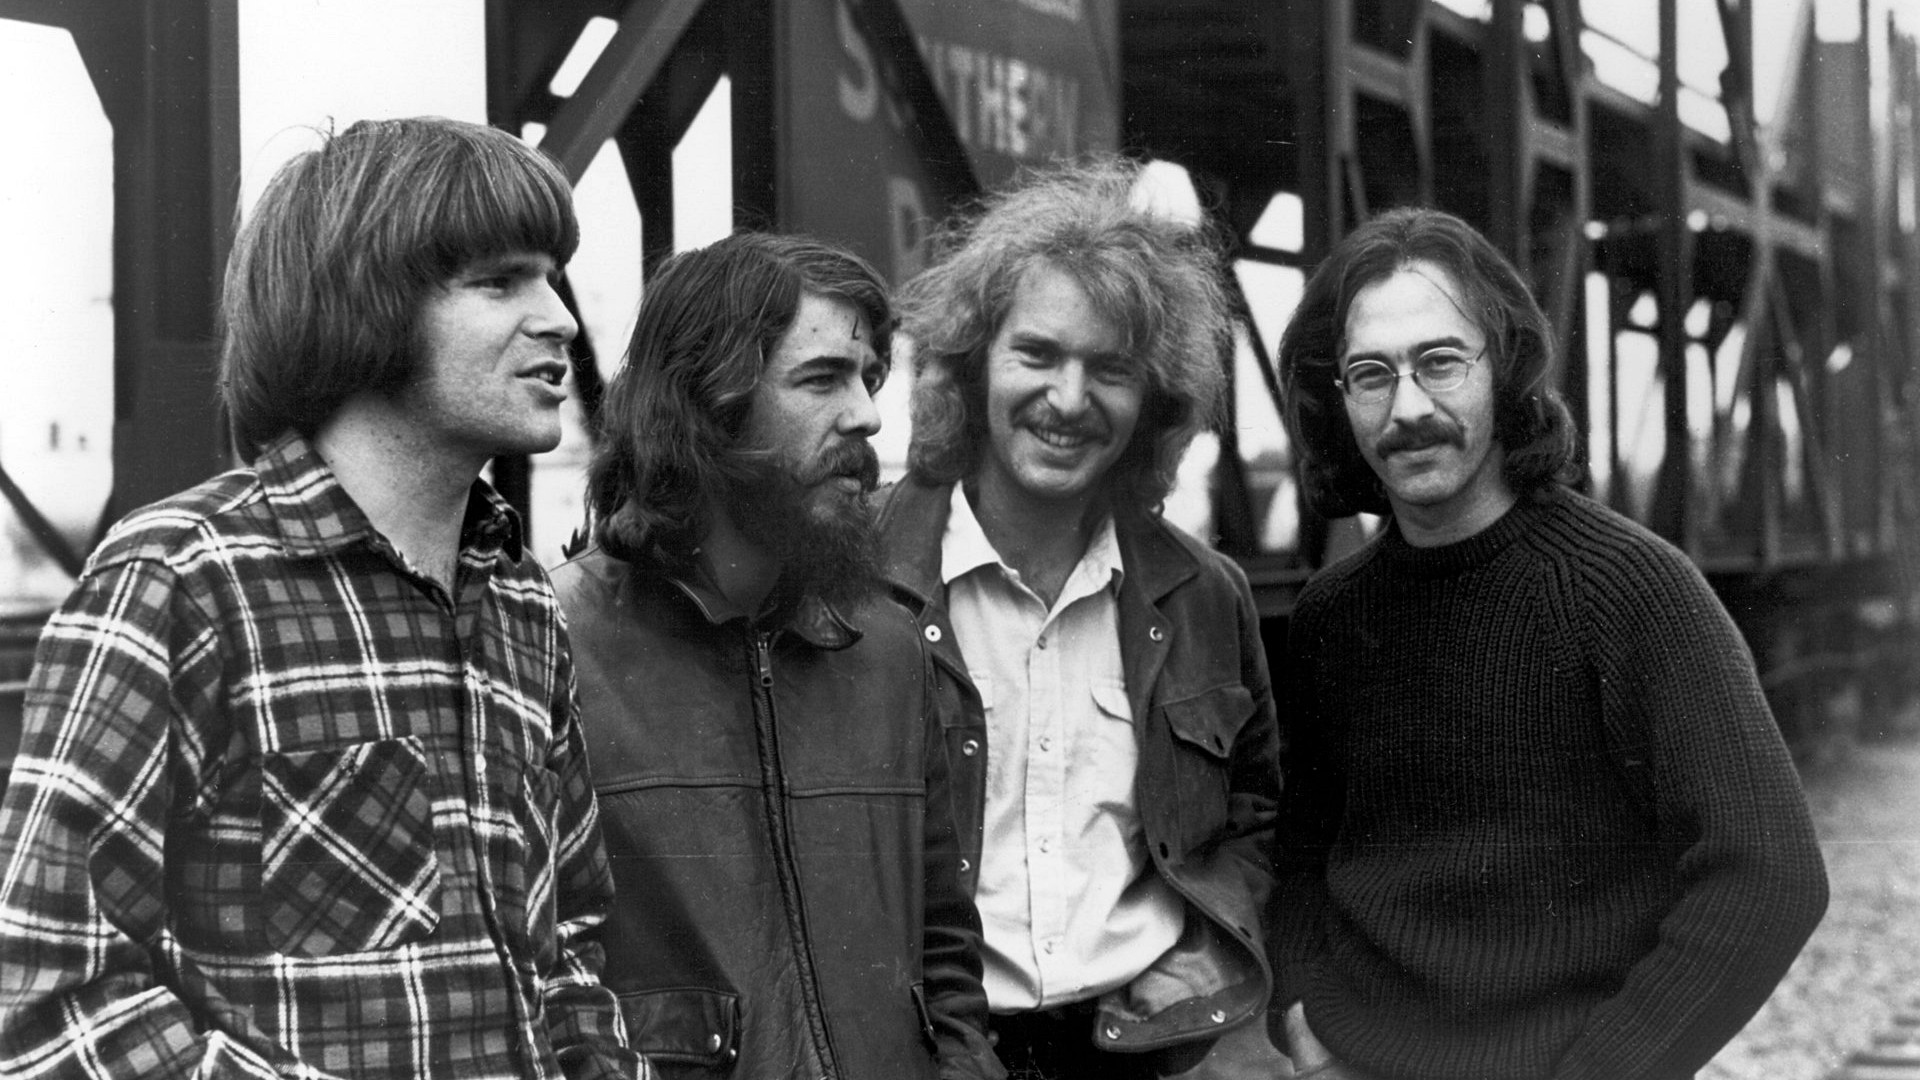 Have You Ever Seen The Rain? av Creedence Clearwater Revival